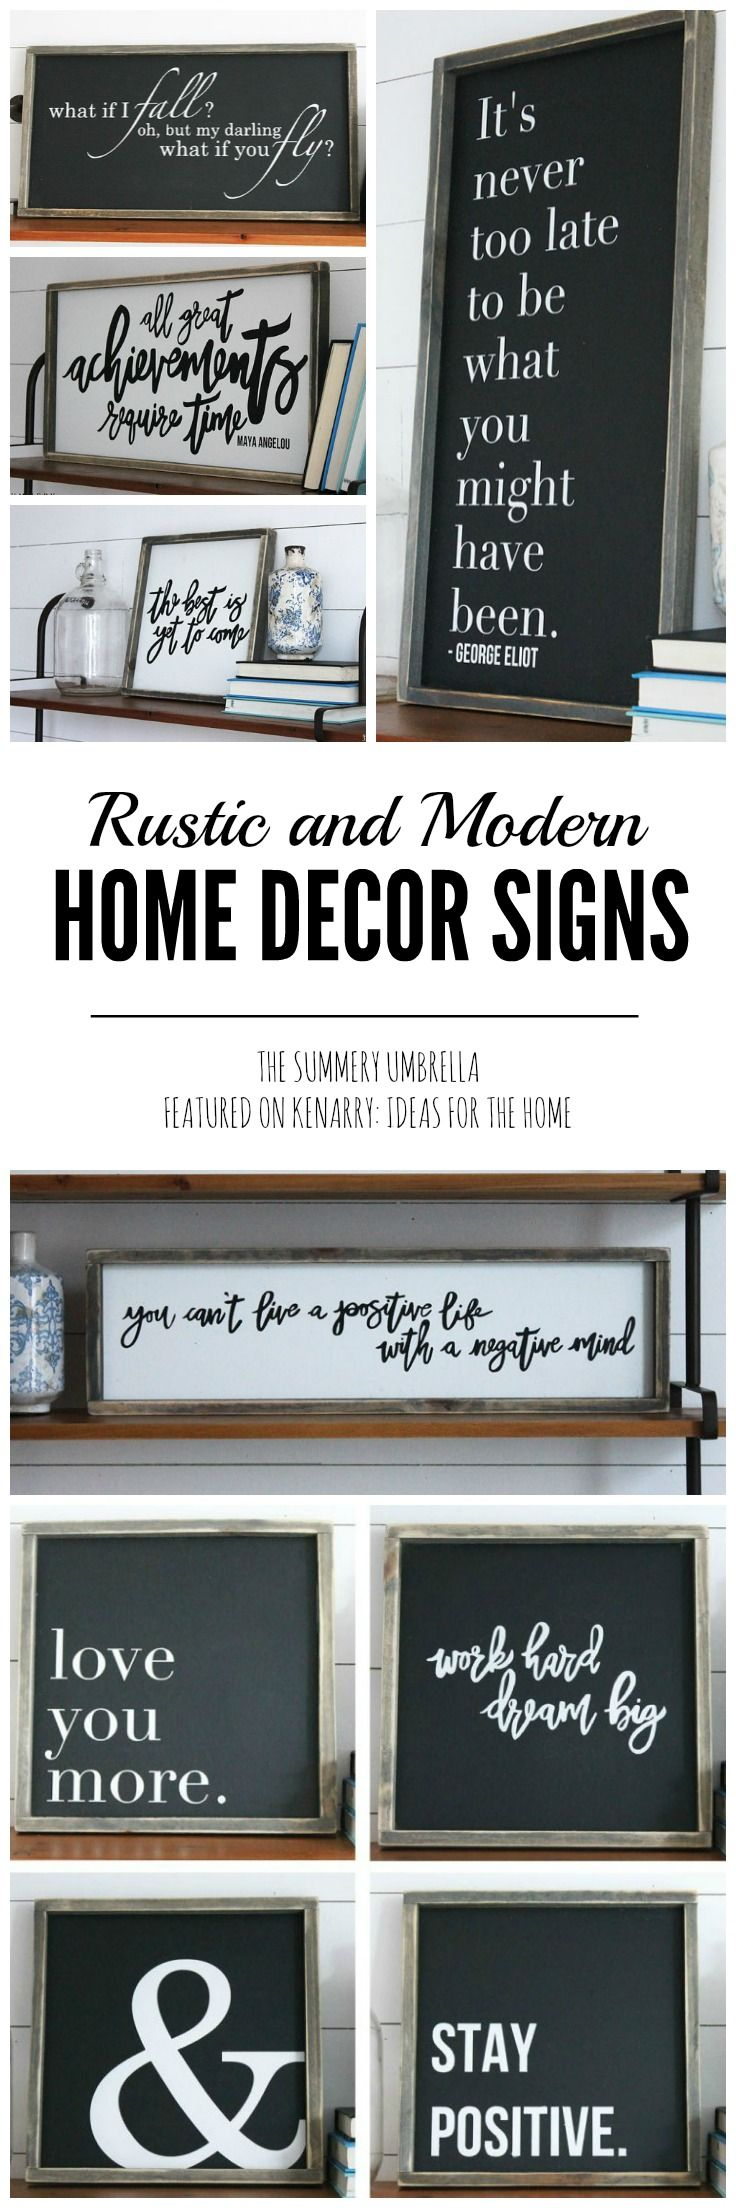 Home Decor Giveaway home decor giveaway with san francisco window cleaners living room traditional and black rug Rustic And Modern Home Decor Signs Giveaway